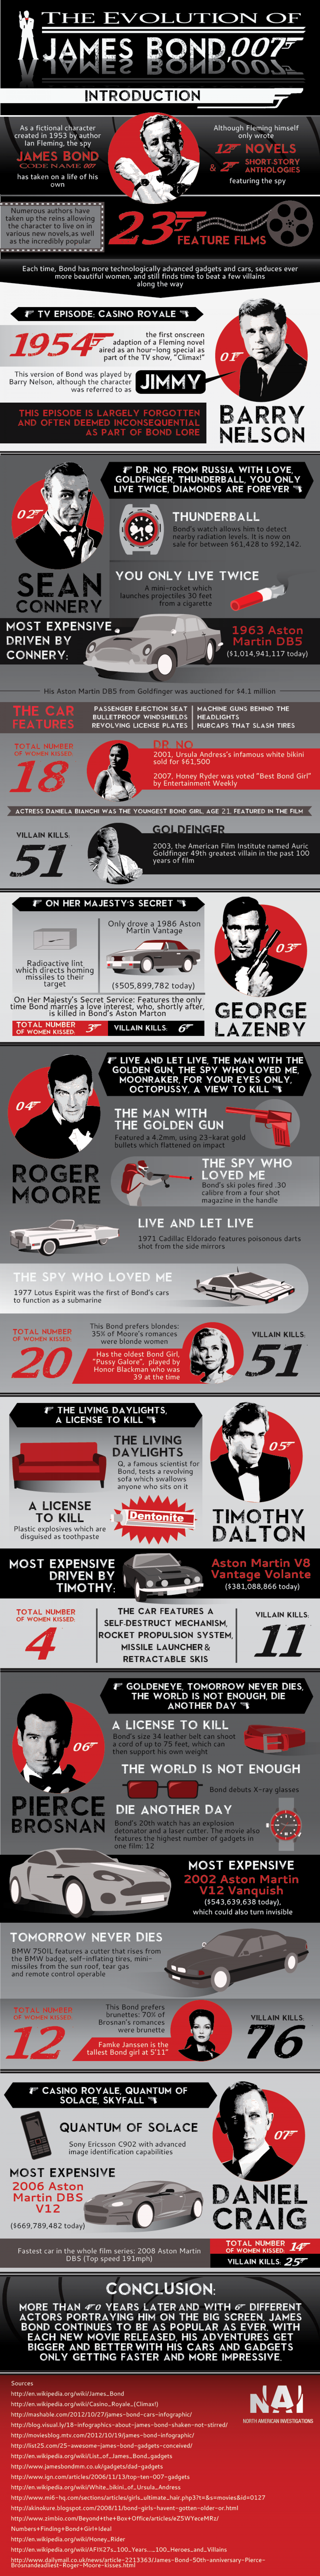 The Evolution of James Bond Infographic